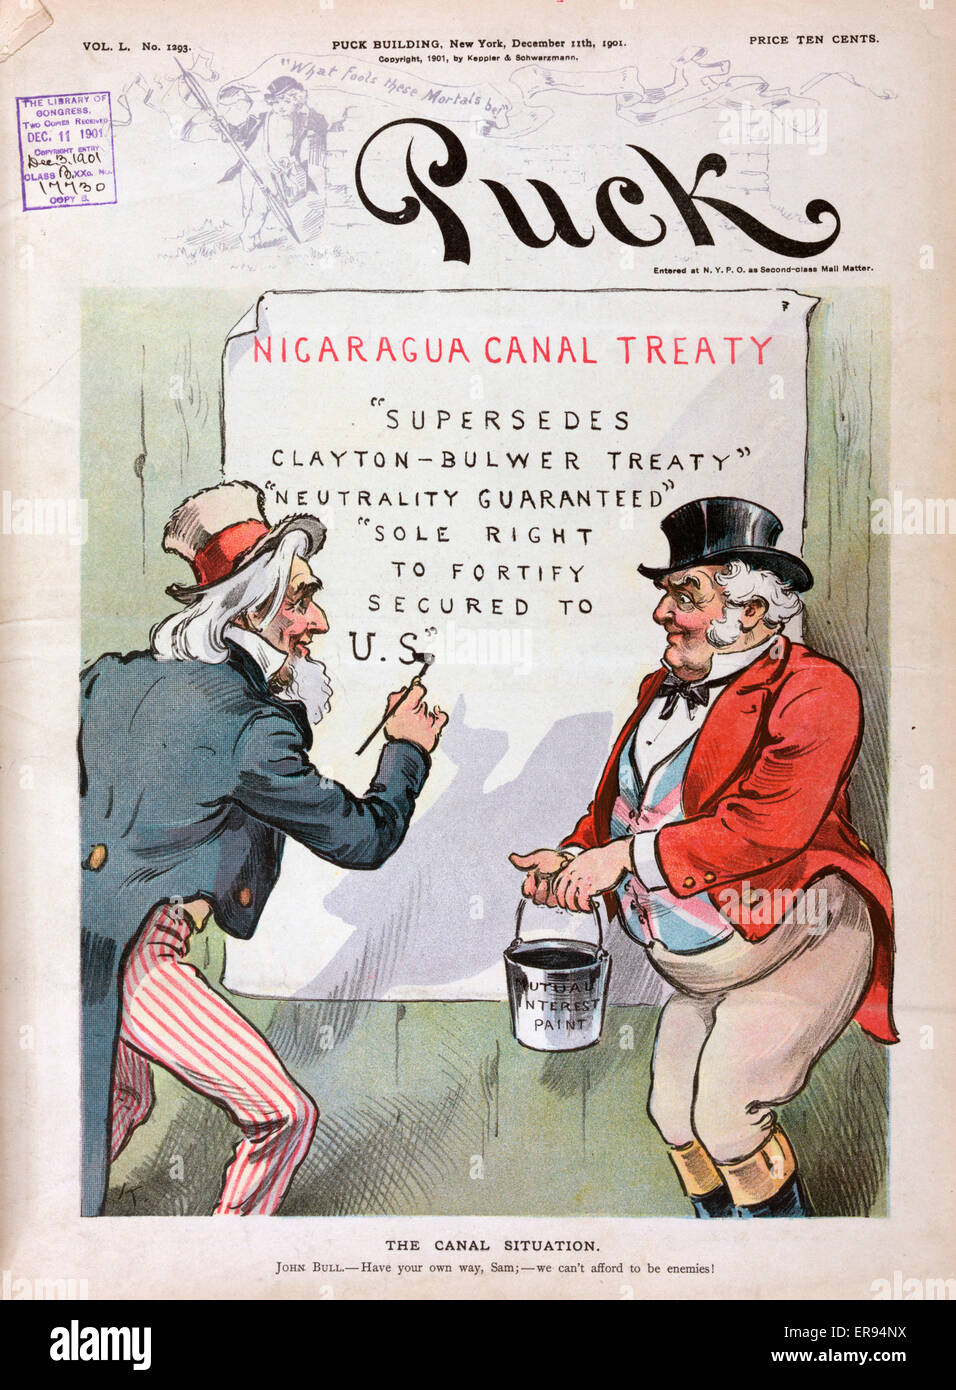 The canal situation. Illustration shows Uncle Sam with paint brush and John Bull, holding a bucket of Mutual Interest - Stock Image